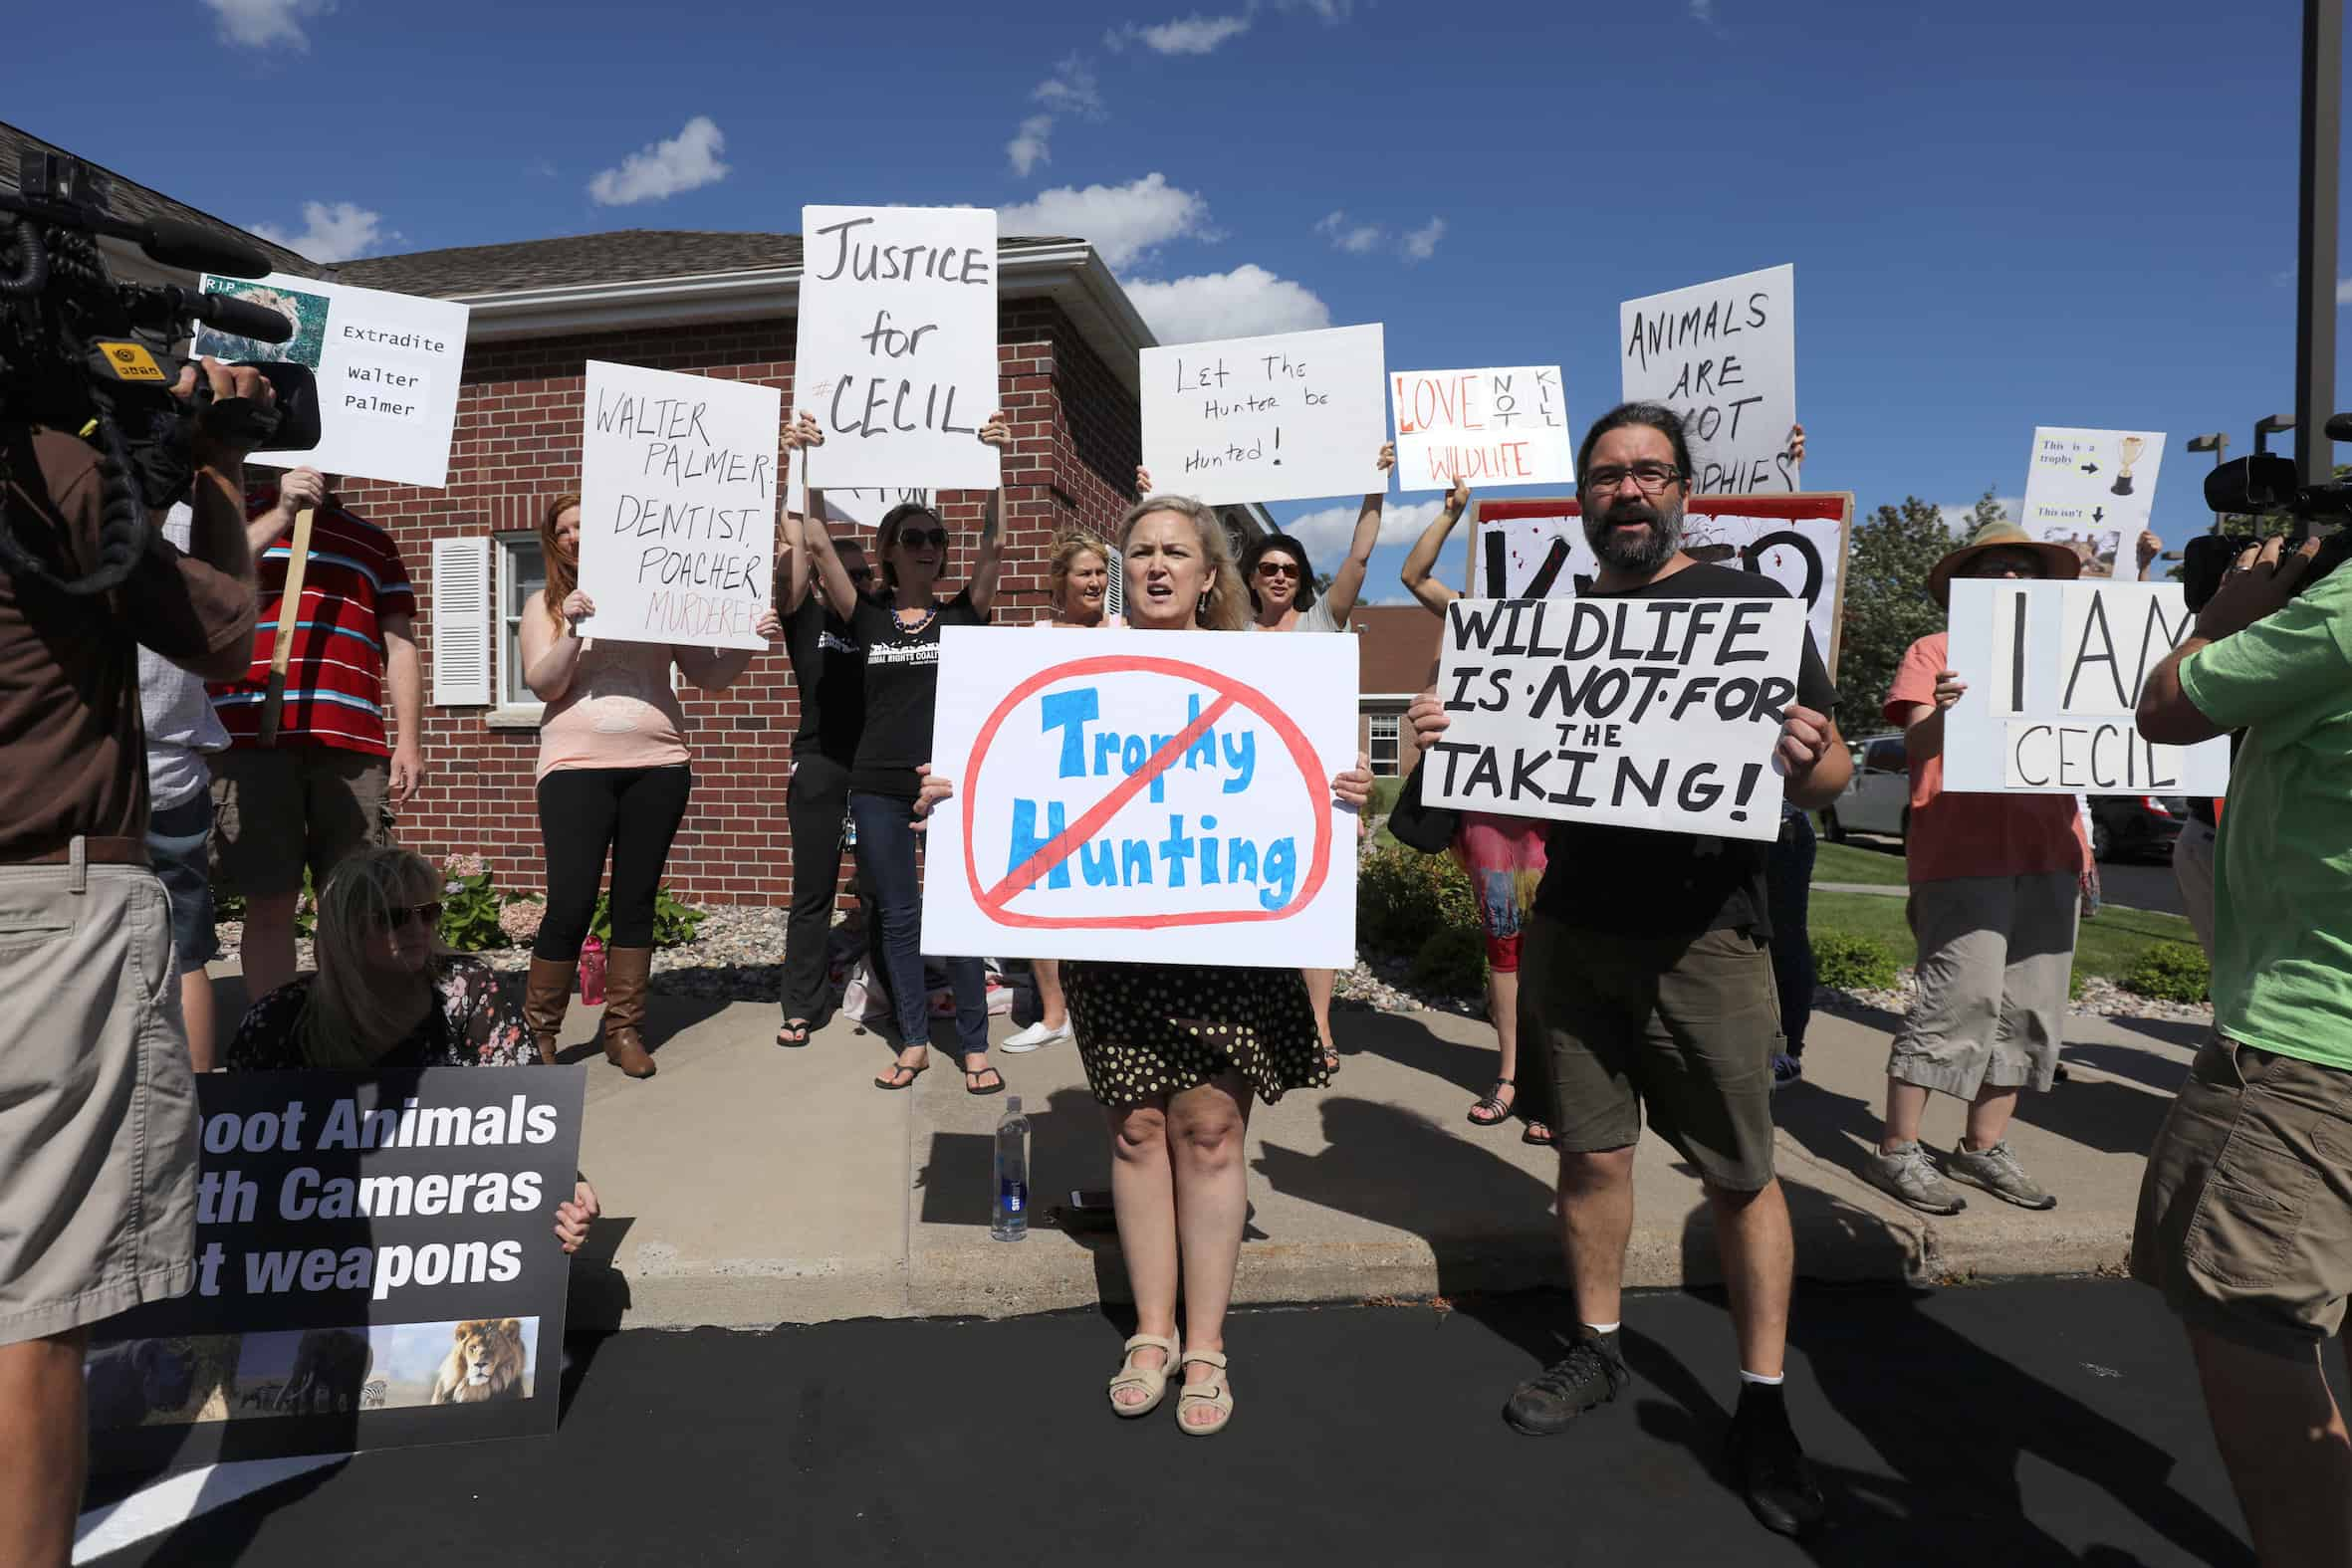 Protesters call attention to the alleged poaching of Cecil the lion in the parking lot of Dr. Walter Palmer's River Bluff Dental Clinic on July 29, 2015 in Bloomington, Minnesota.